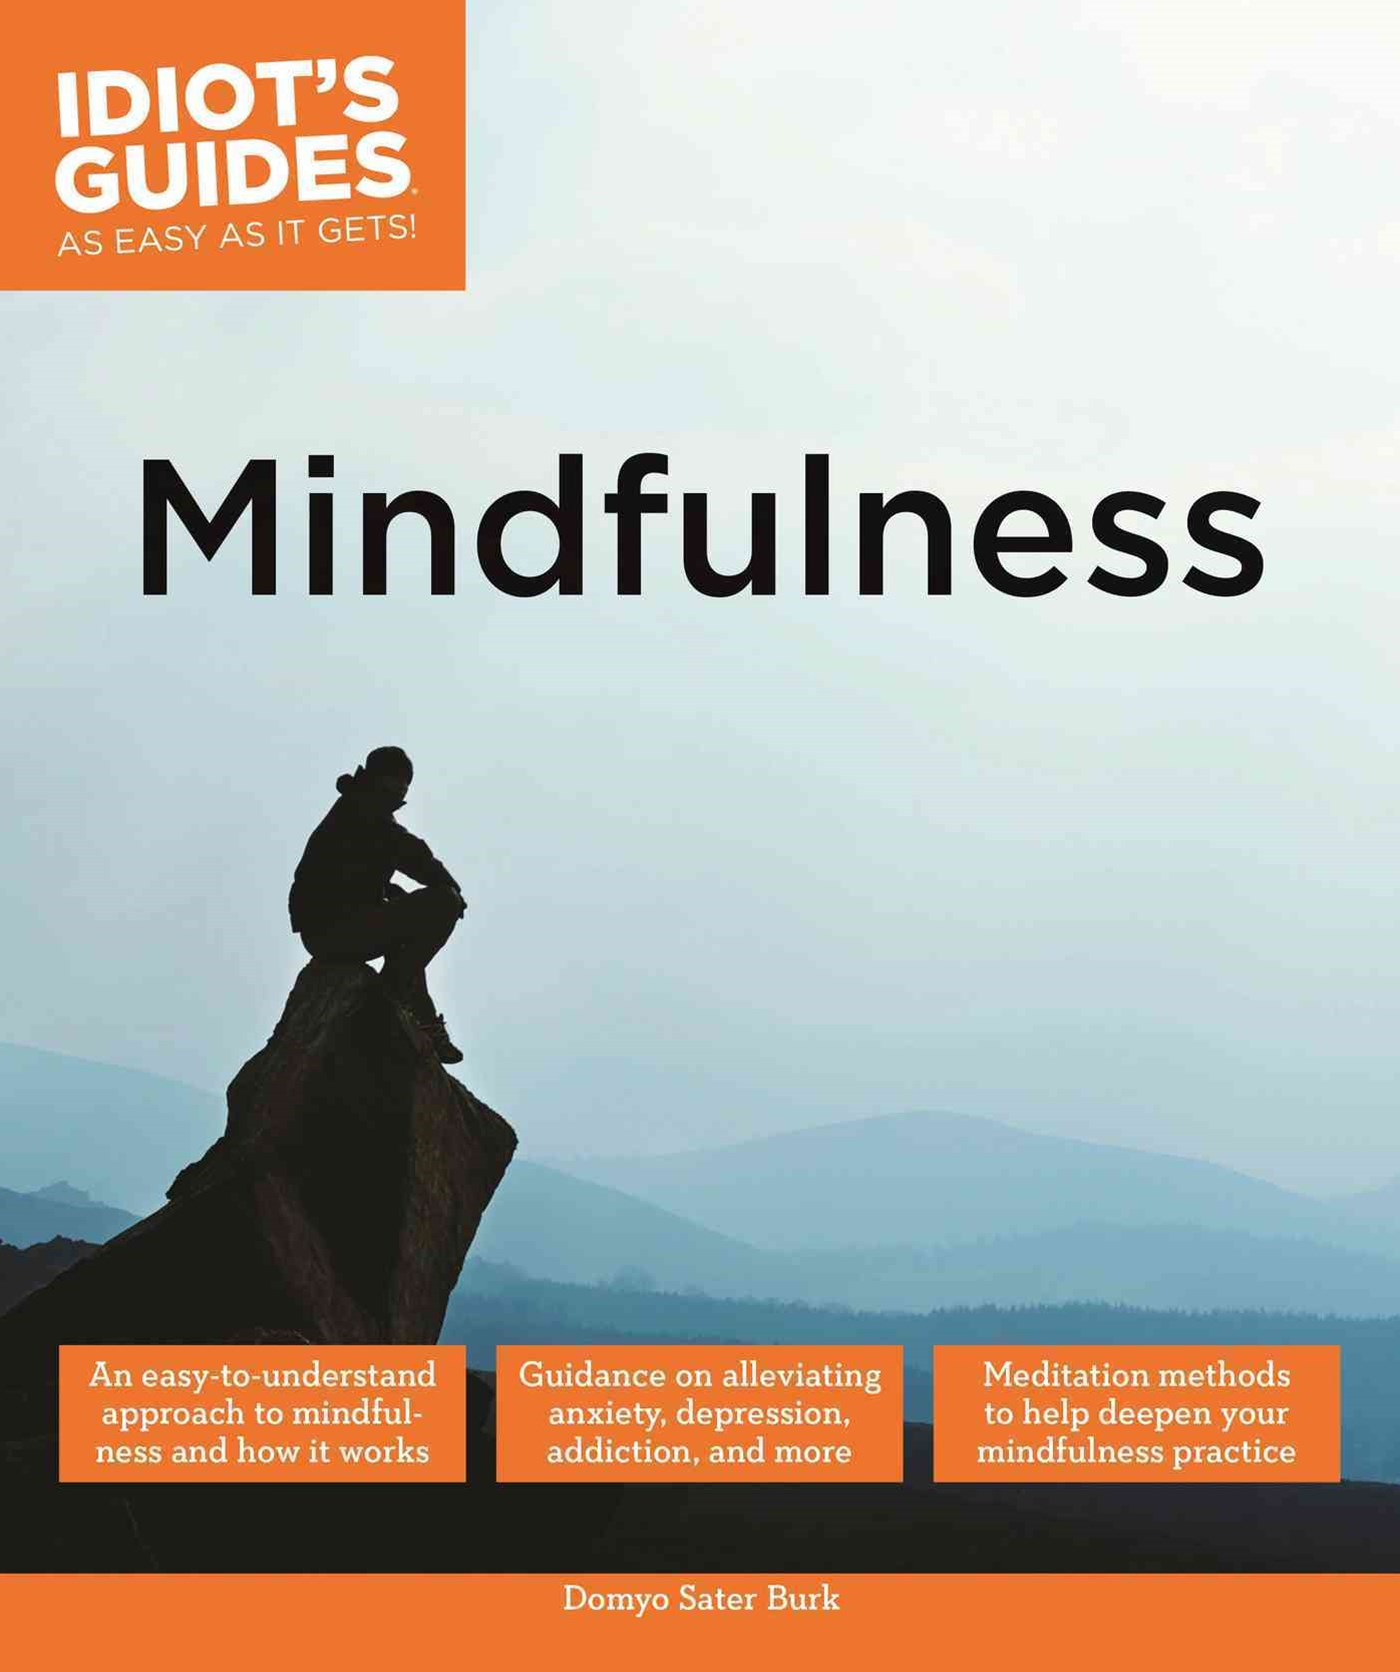 Idiot's Guides - Mindfulness